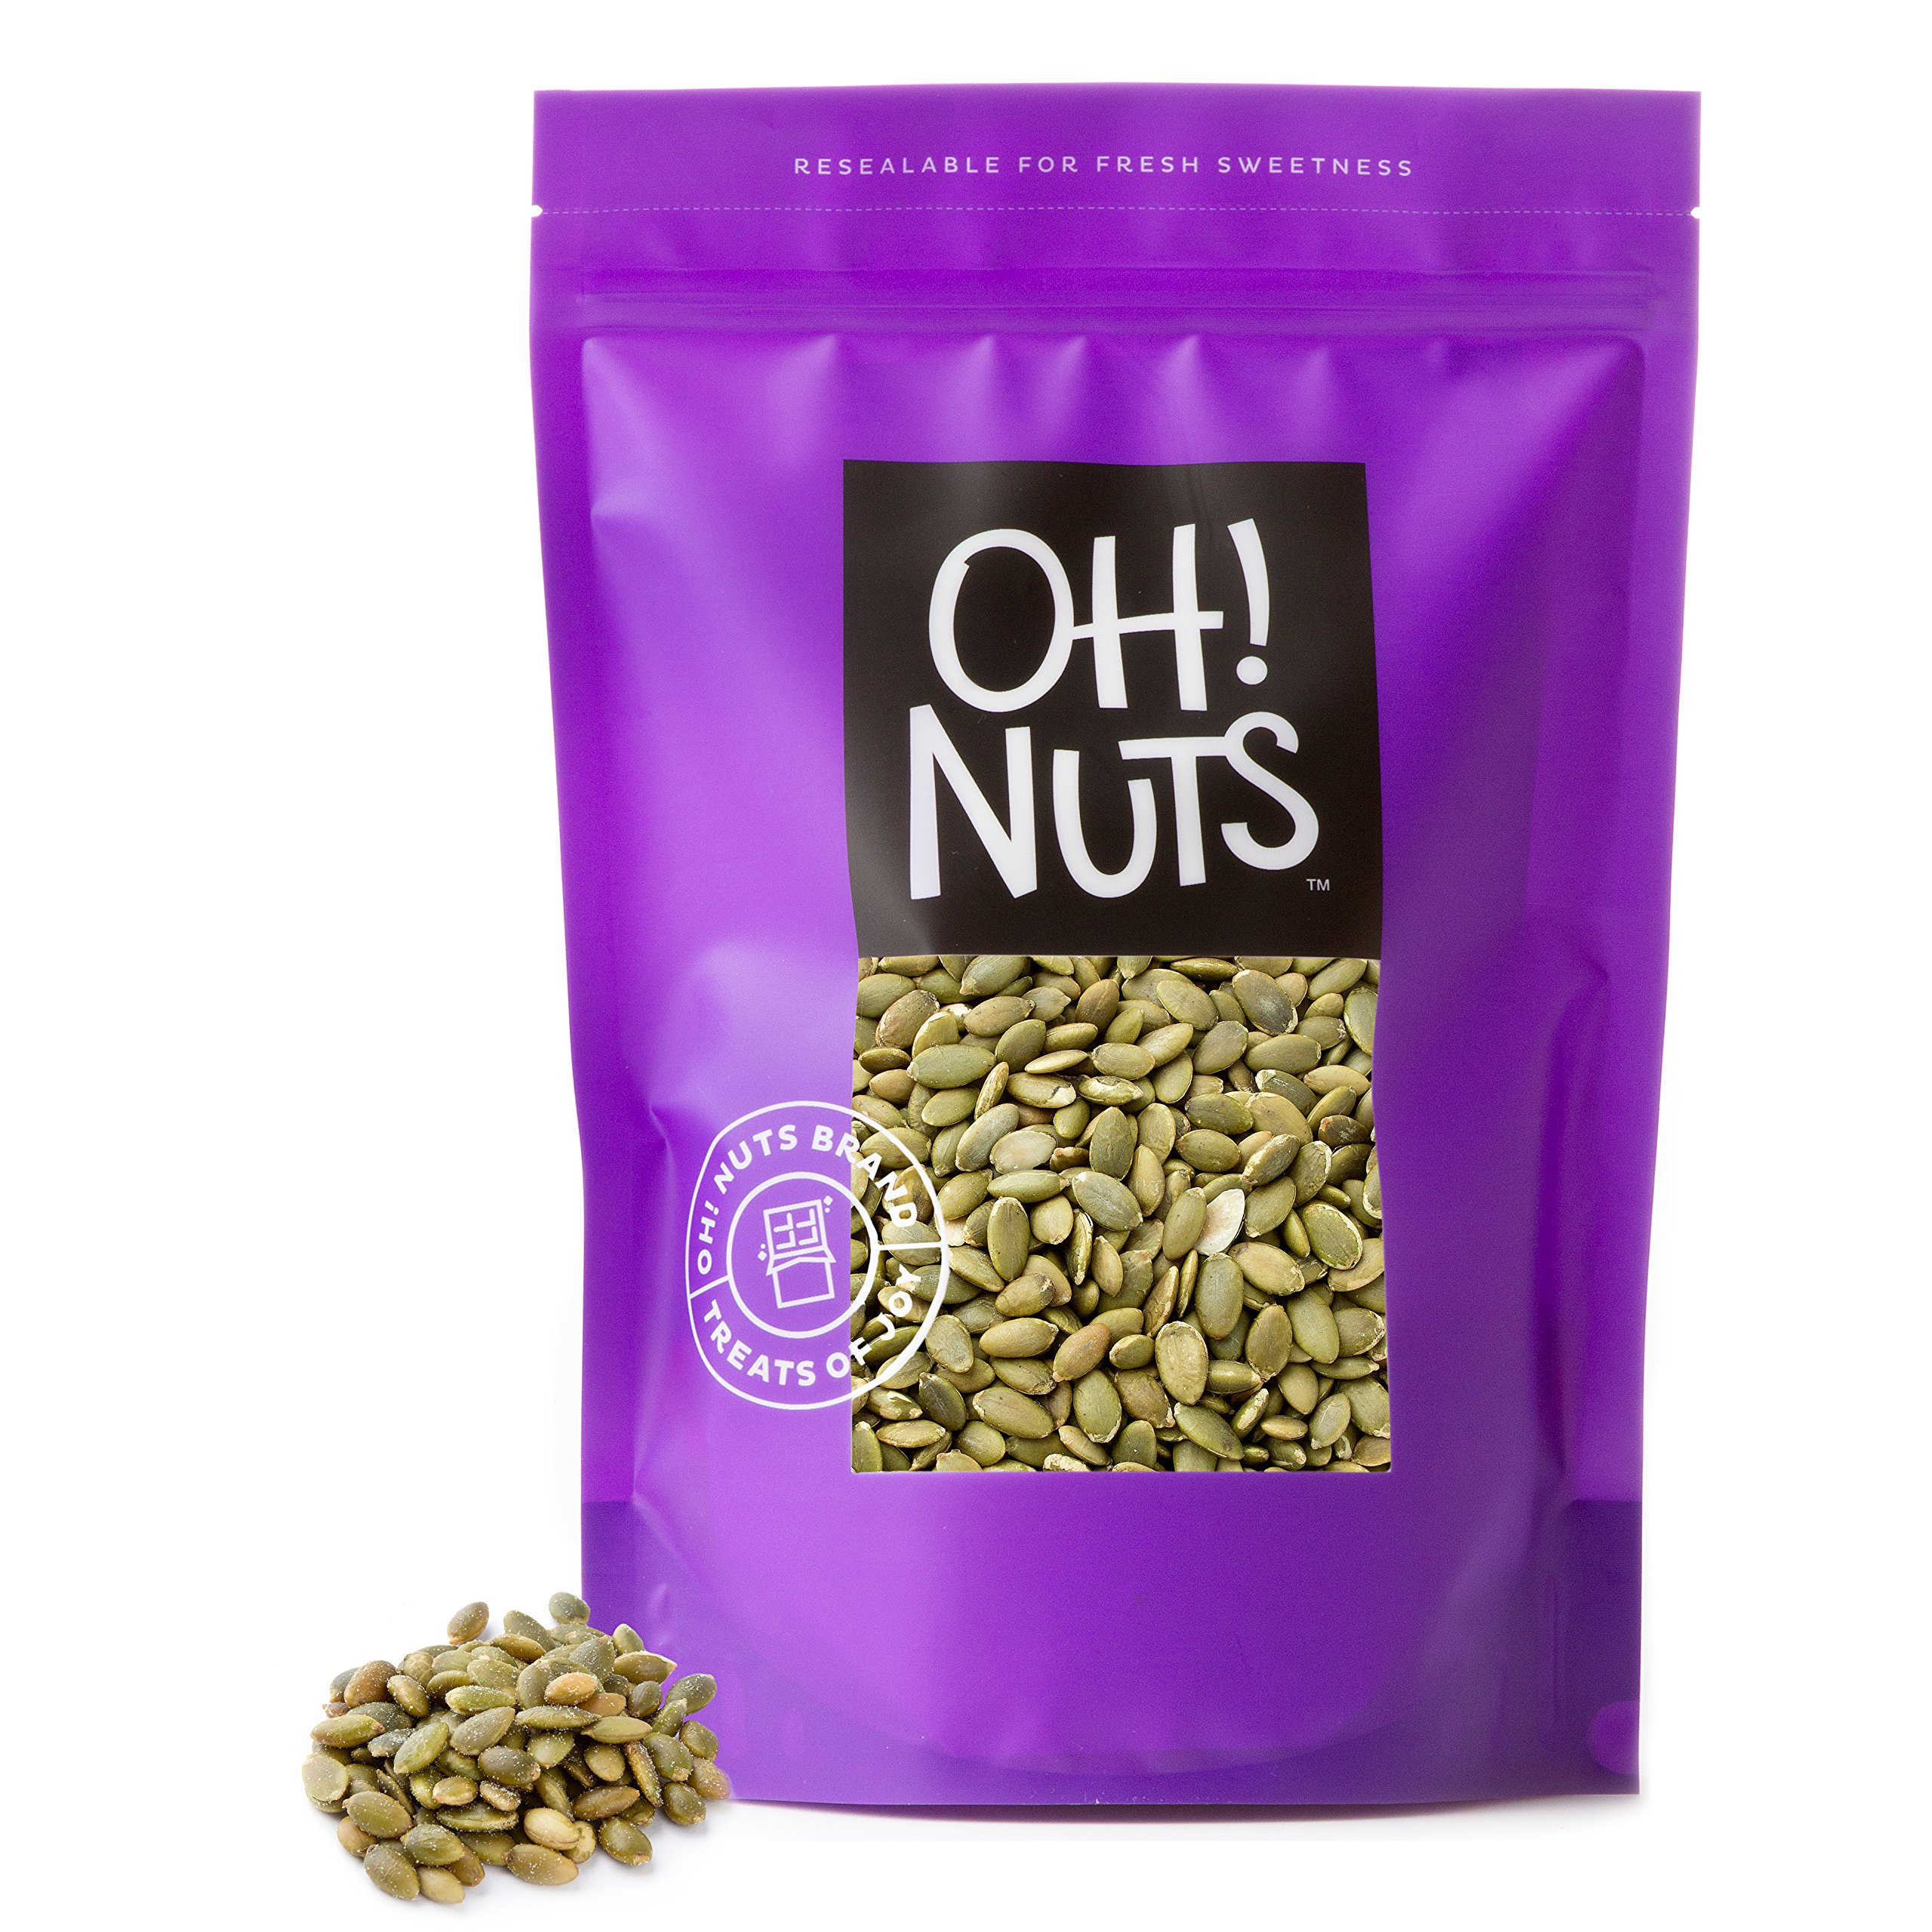 Roasted Salted Pepitas (No Shell Pumpkin Seeds) 5 Pound Bag - Oh! Nuts by Oh! Nuts®